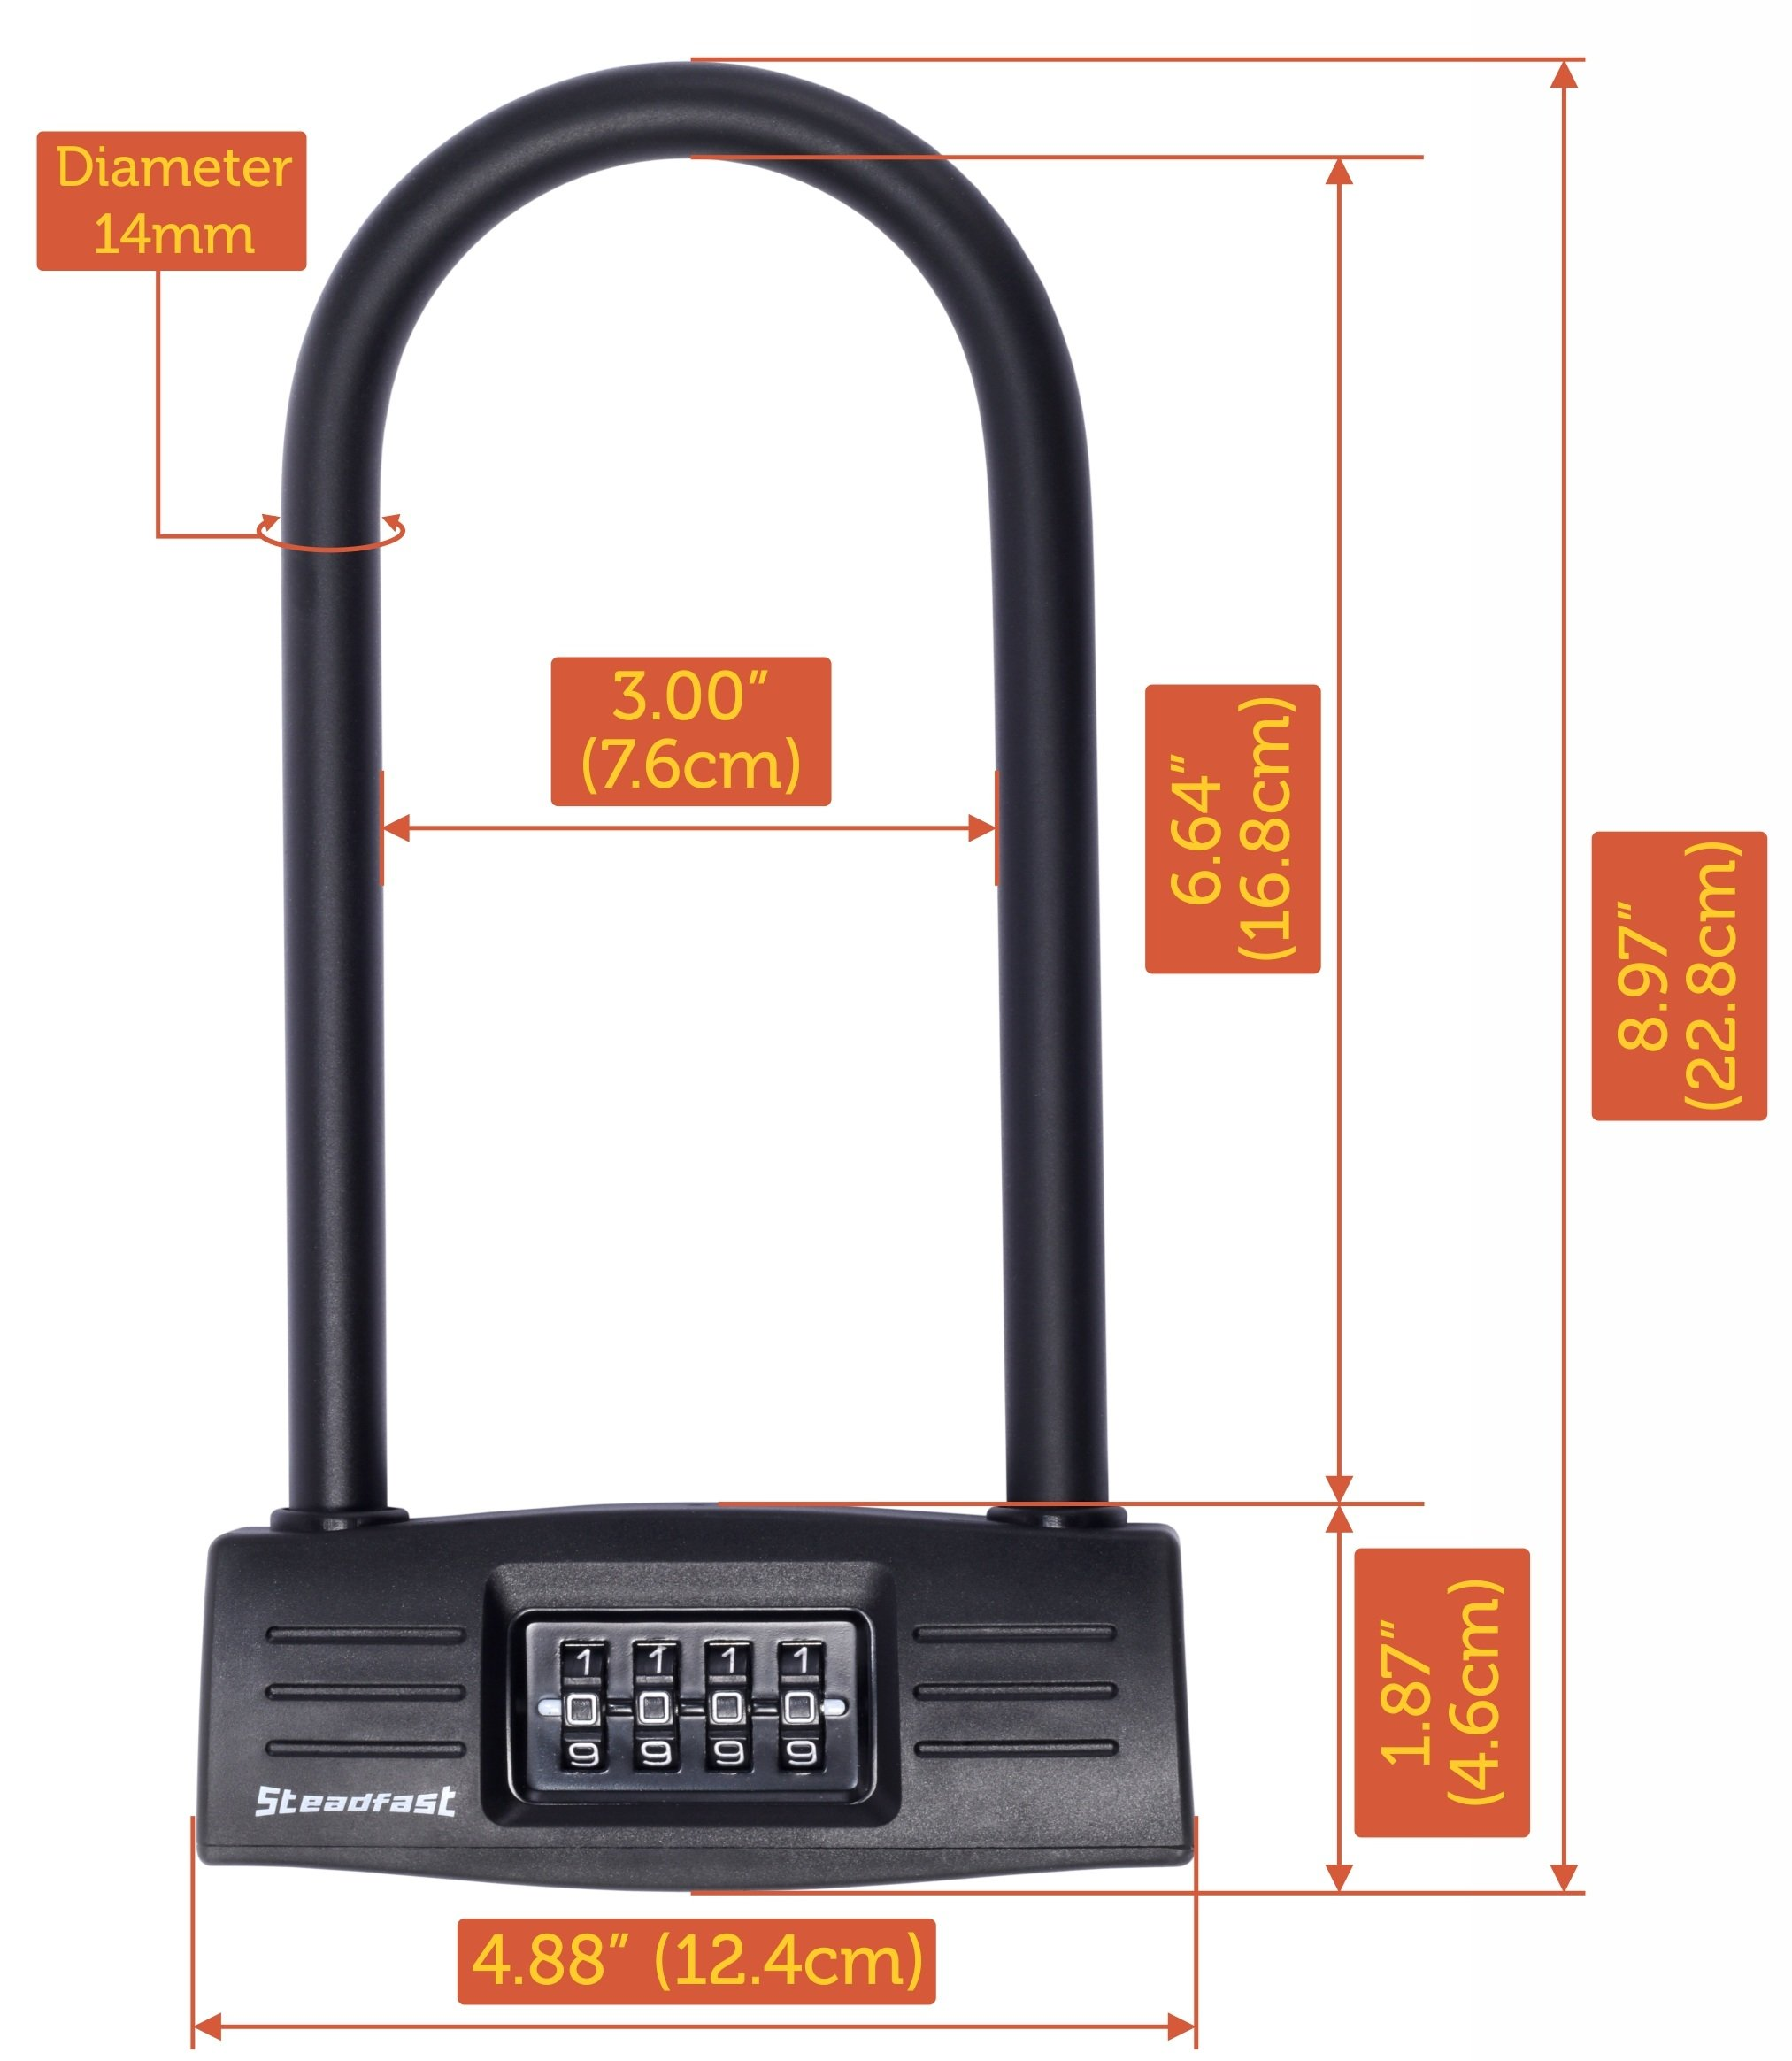 U lock Bike lock - Resettable Combination U lock / D lock for Bicycles / Gate Lock - Secure your bike while eliminating the need to carry the key. 14mm Shackle for Heavy Duty Protection by Steadfast Brand (Image #4)